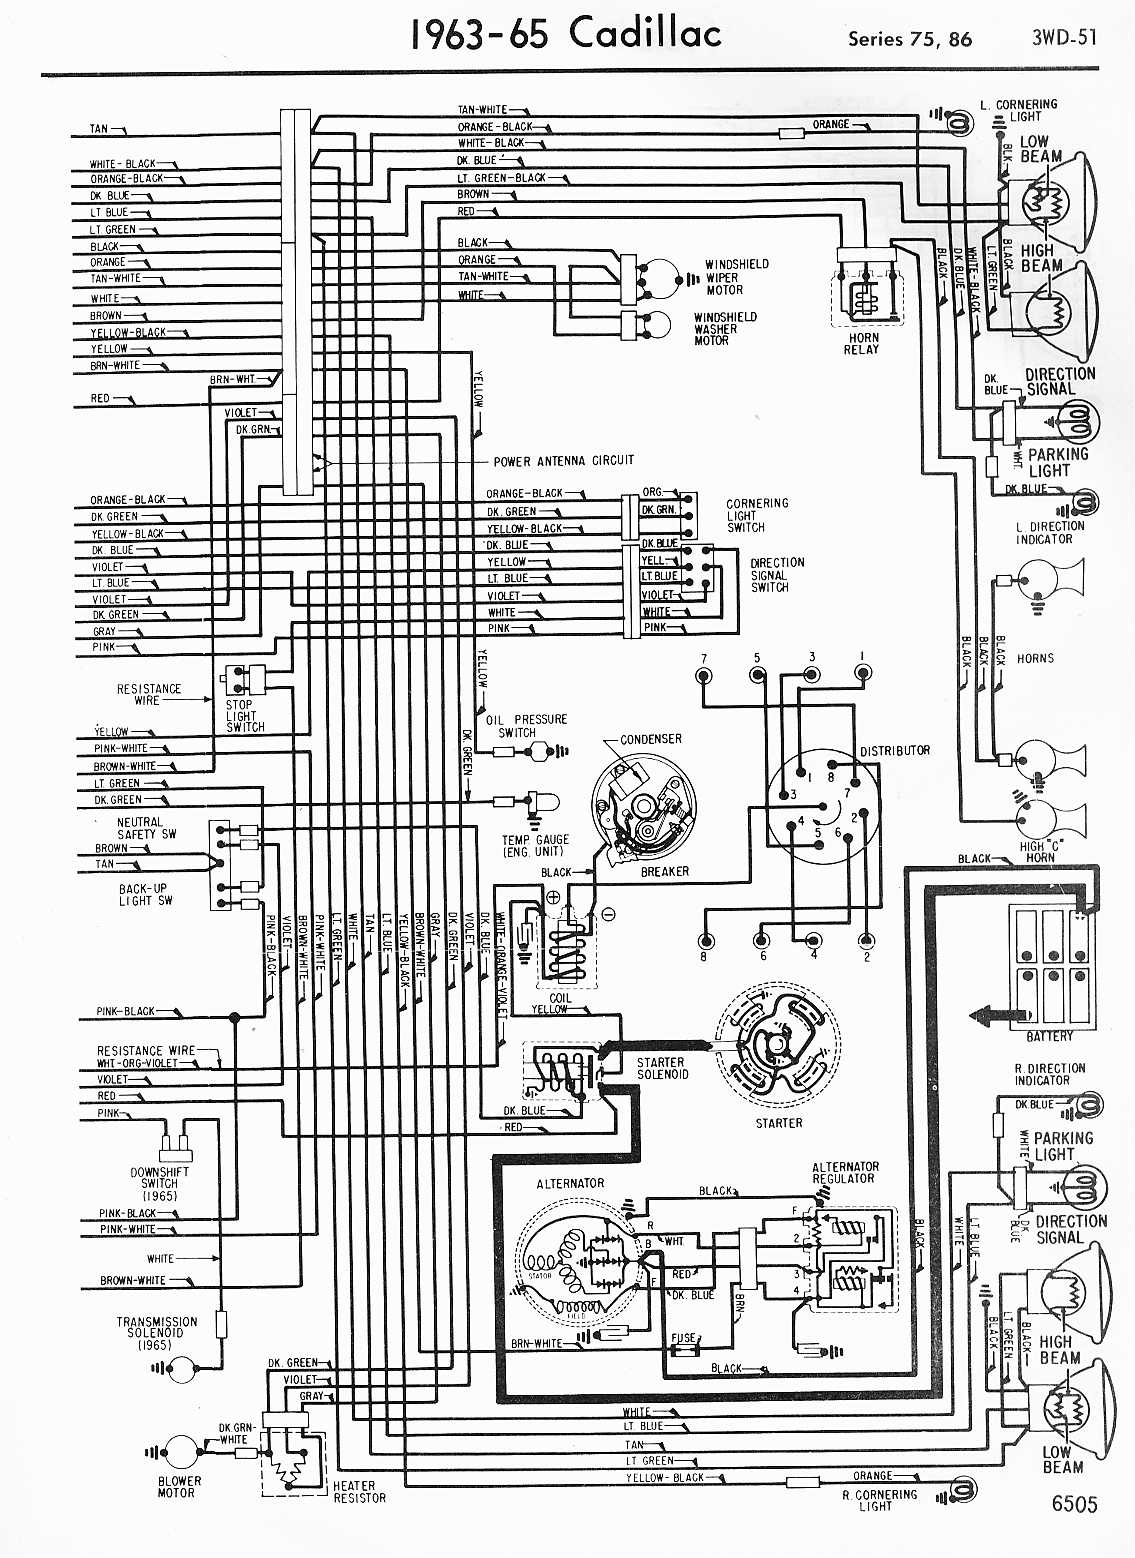 MWireCadi65_3WD 051 cadillac wiring diagrams 1957 1965 1954 plymouth belvedere wiring diagram at eliteediting.co